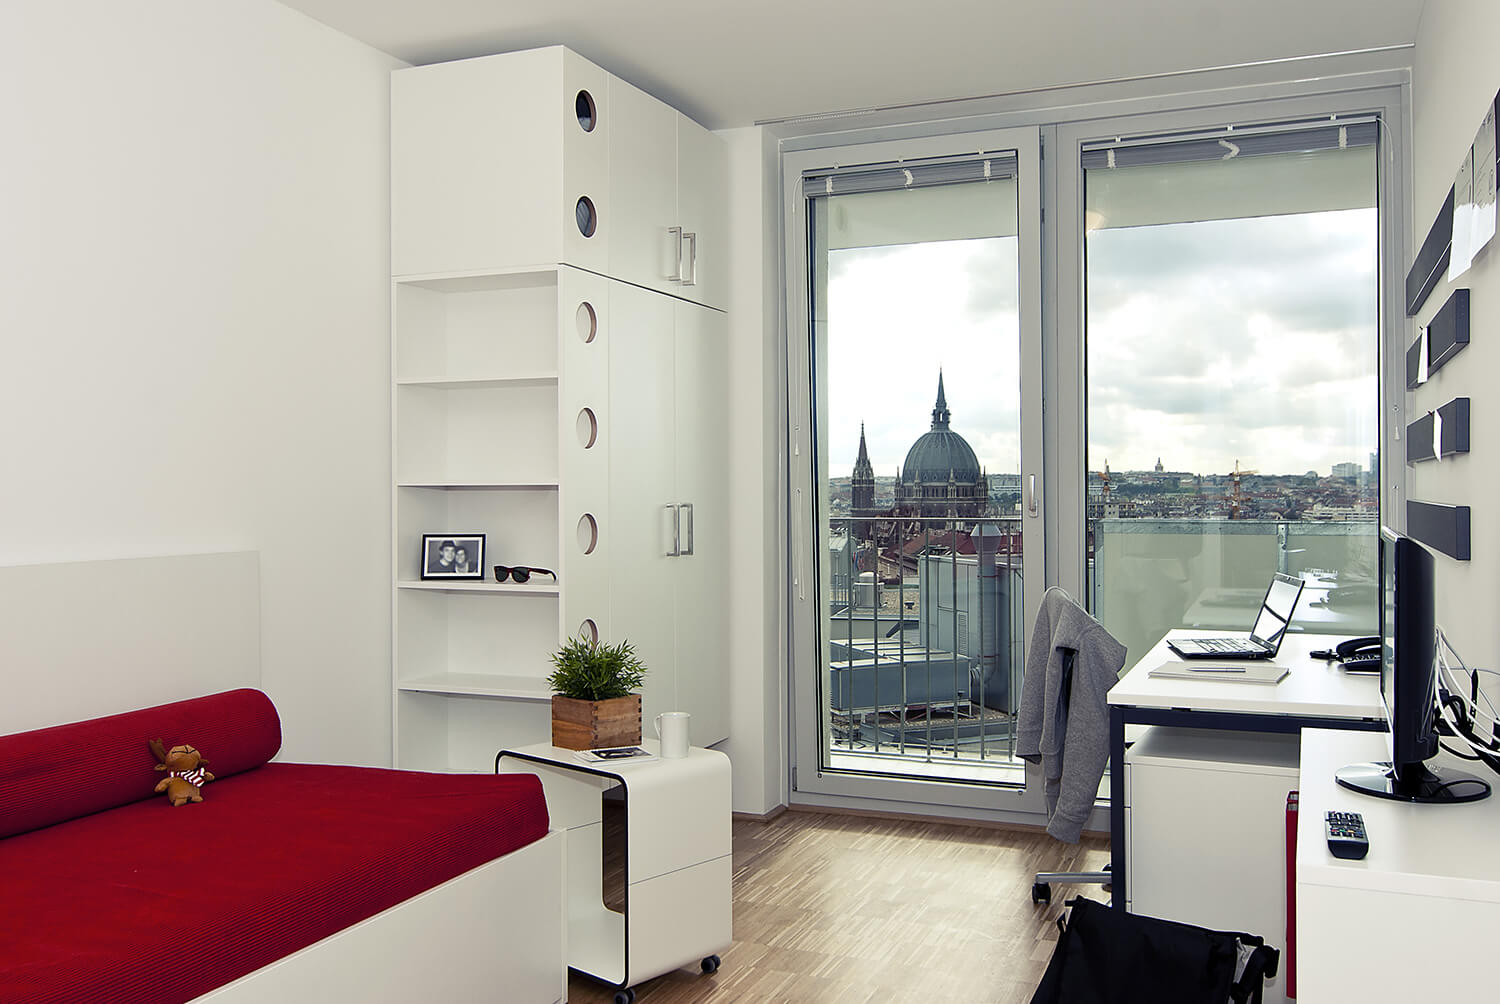 Accommodation in an Austrian student residence | IFU Sprachschulung